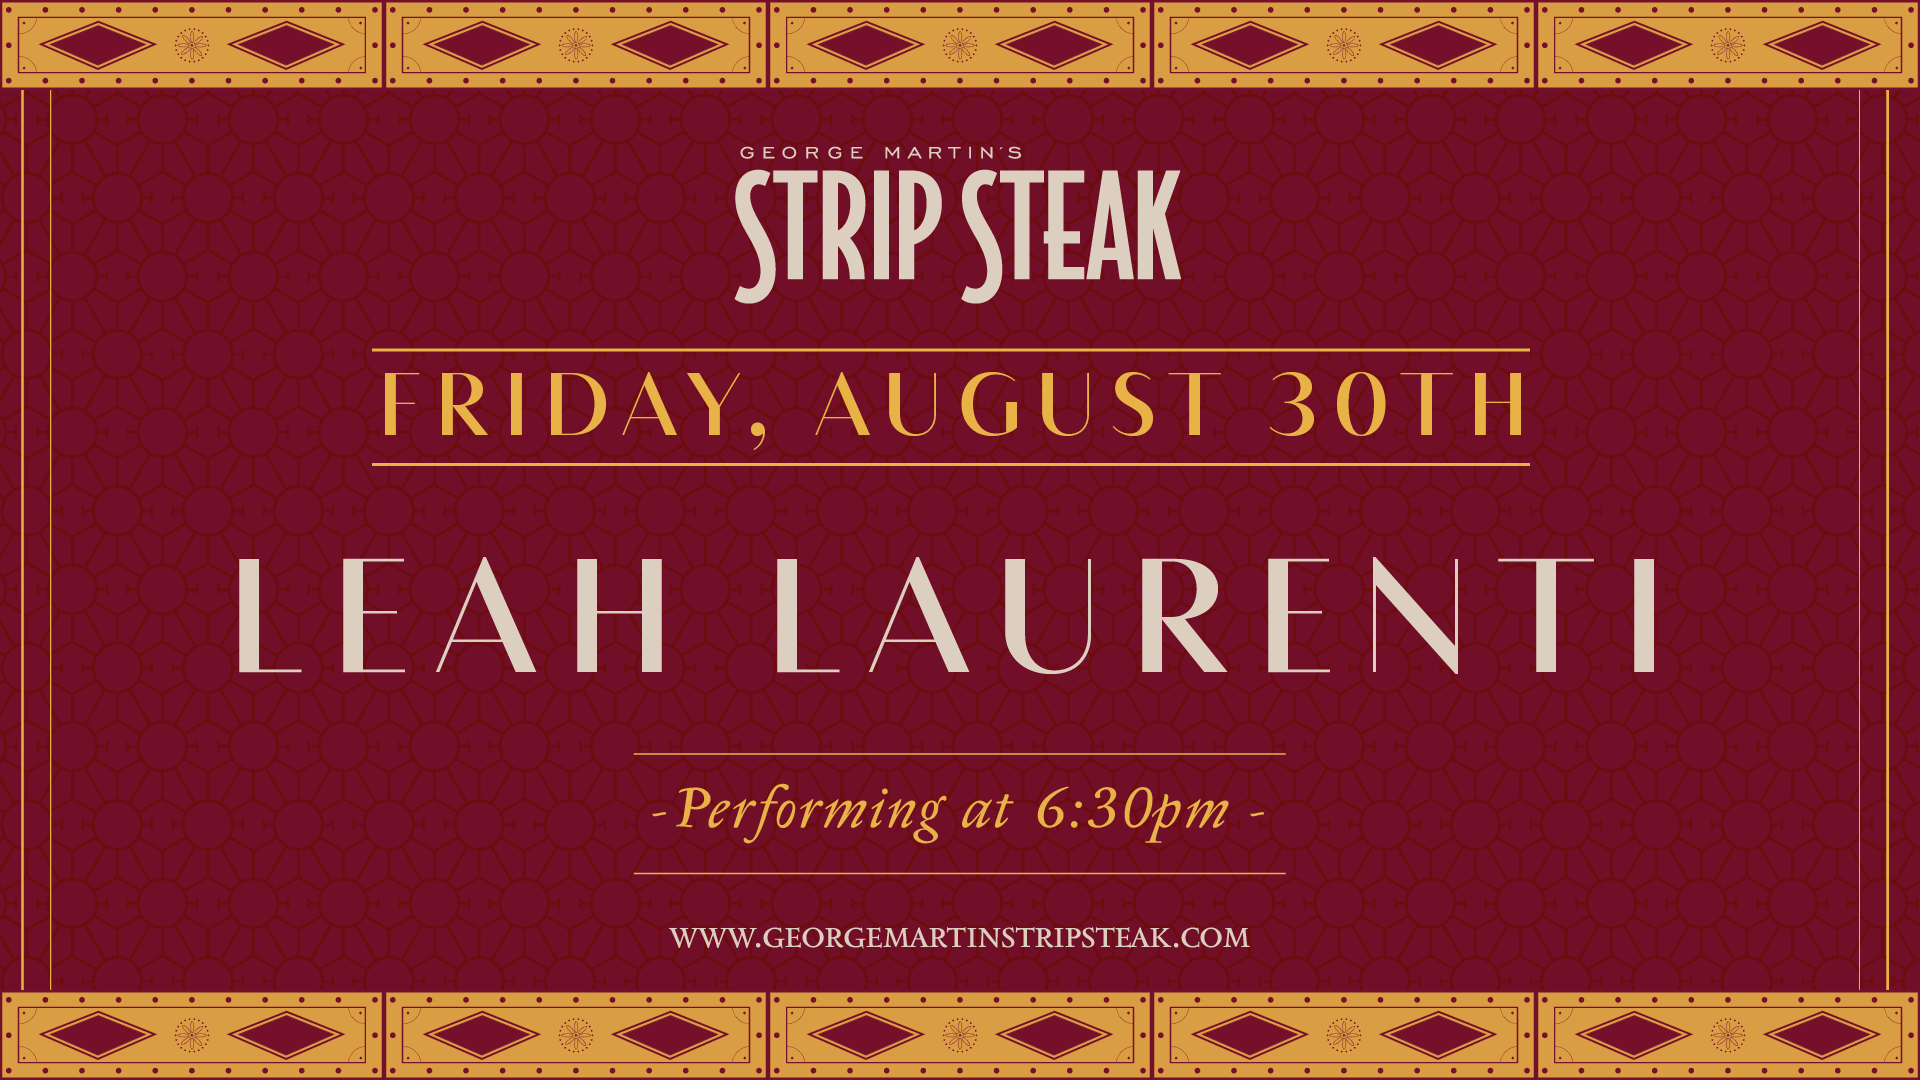 Flyer for live music with Leah Laurenti on August 30th at 6:30pm